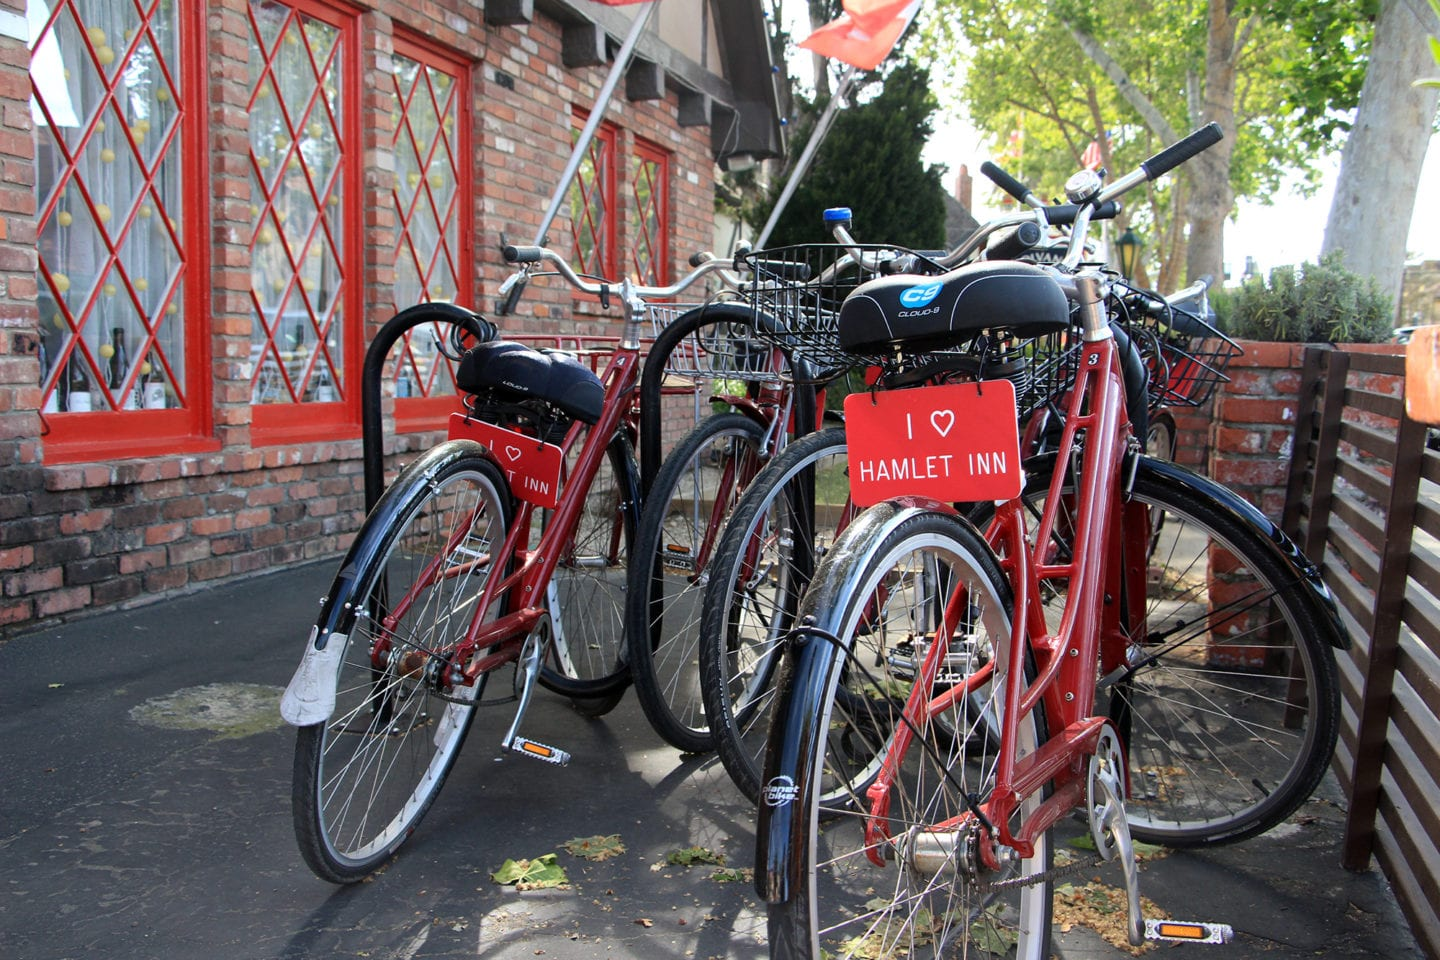 Complimentary bicycles to borrow at the Hamlet Inn